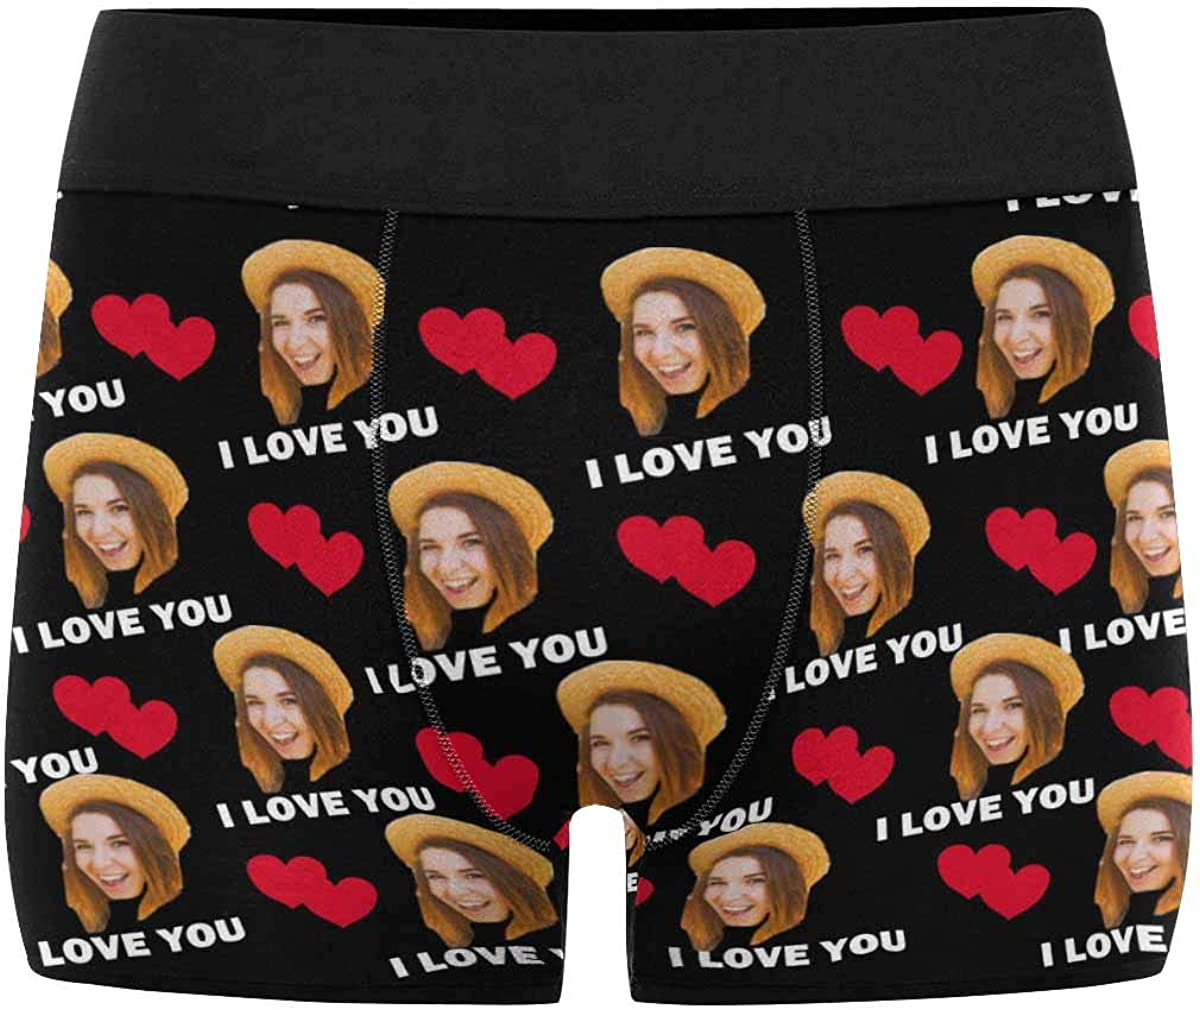 Custom Lover Face Boxer Briefs I Love You Personalized Photo Funny Underwear Shorts for Men The Best Gifts